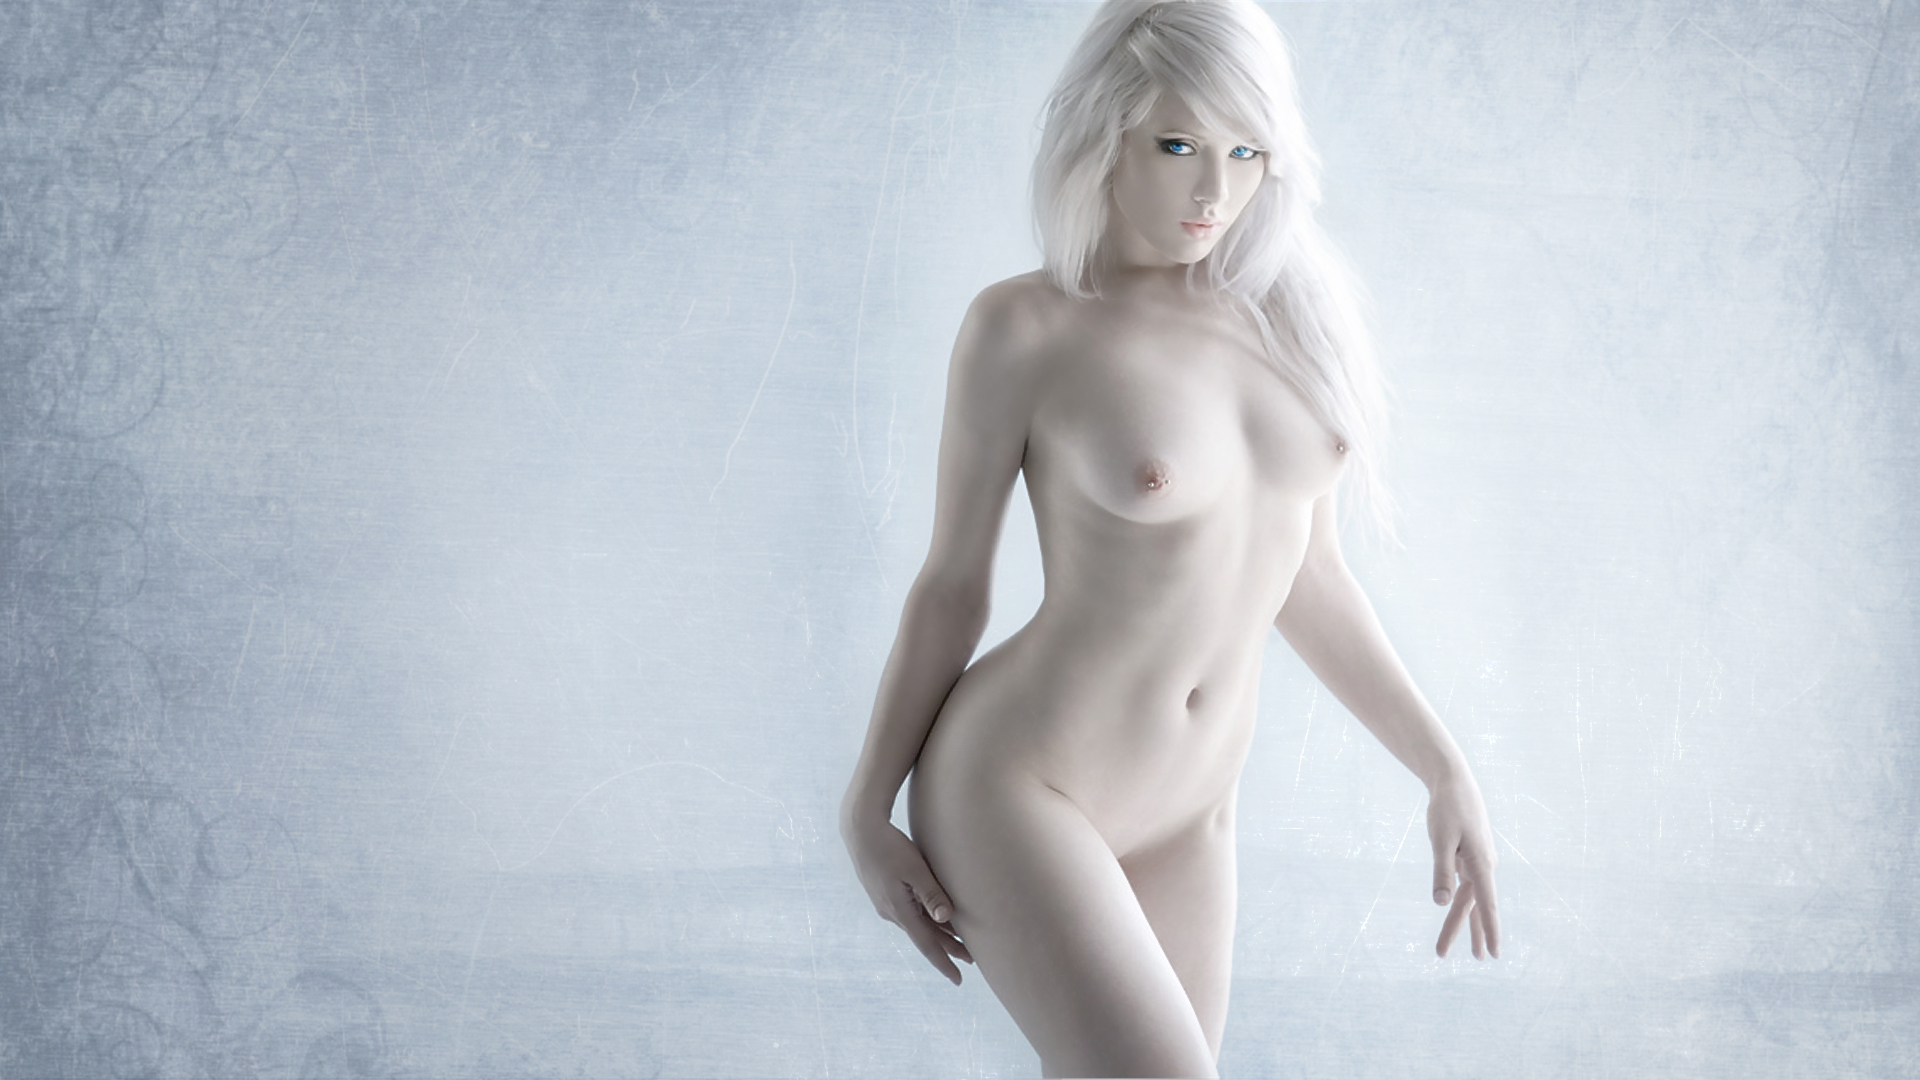 hottest russian athletes naked